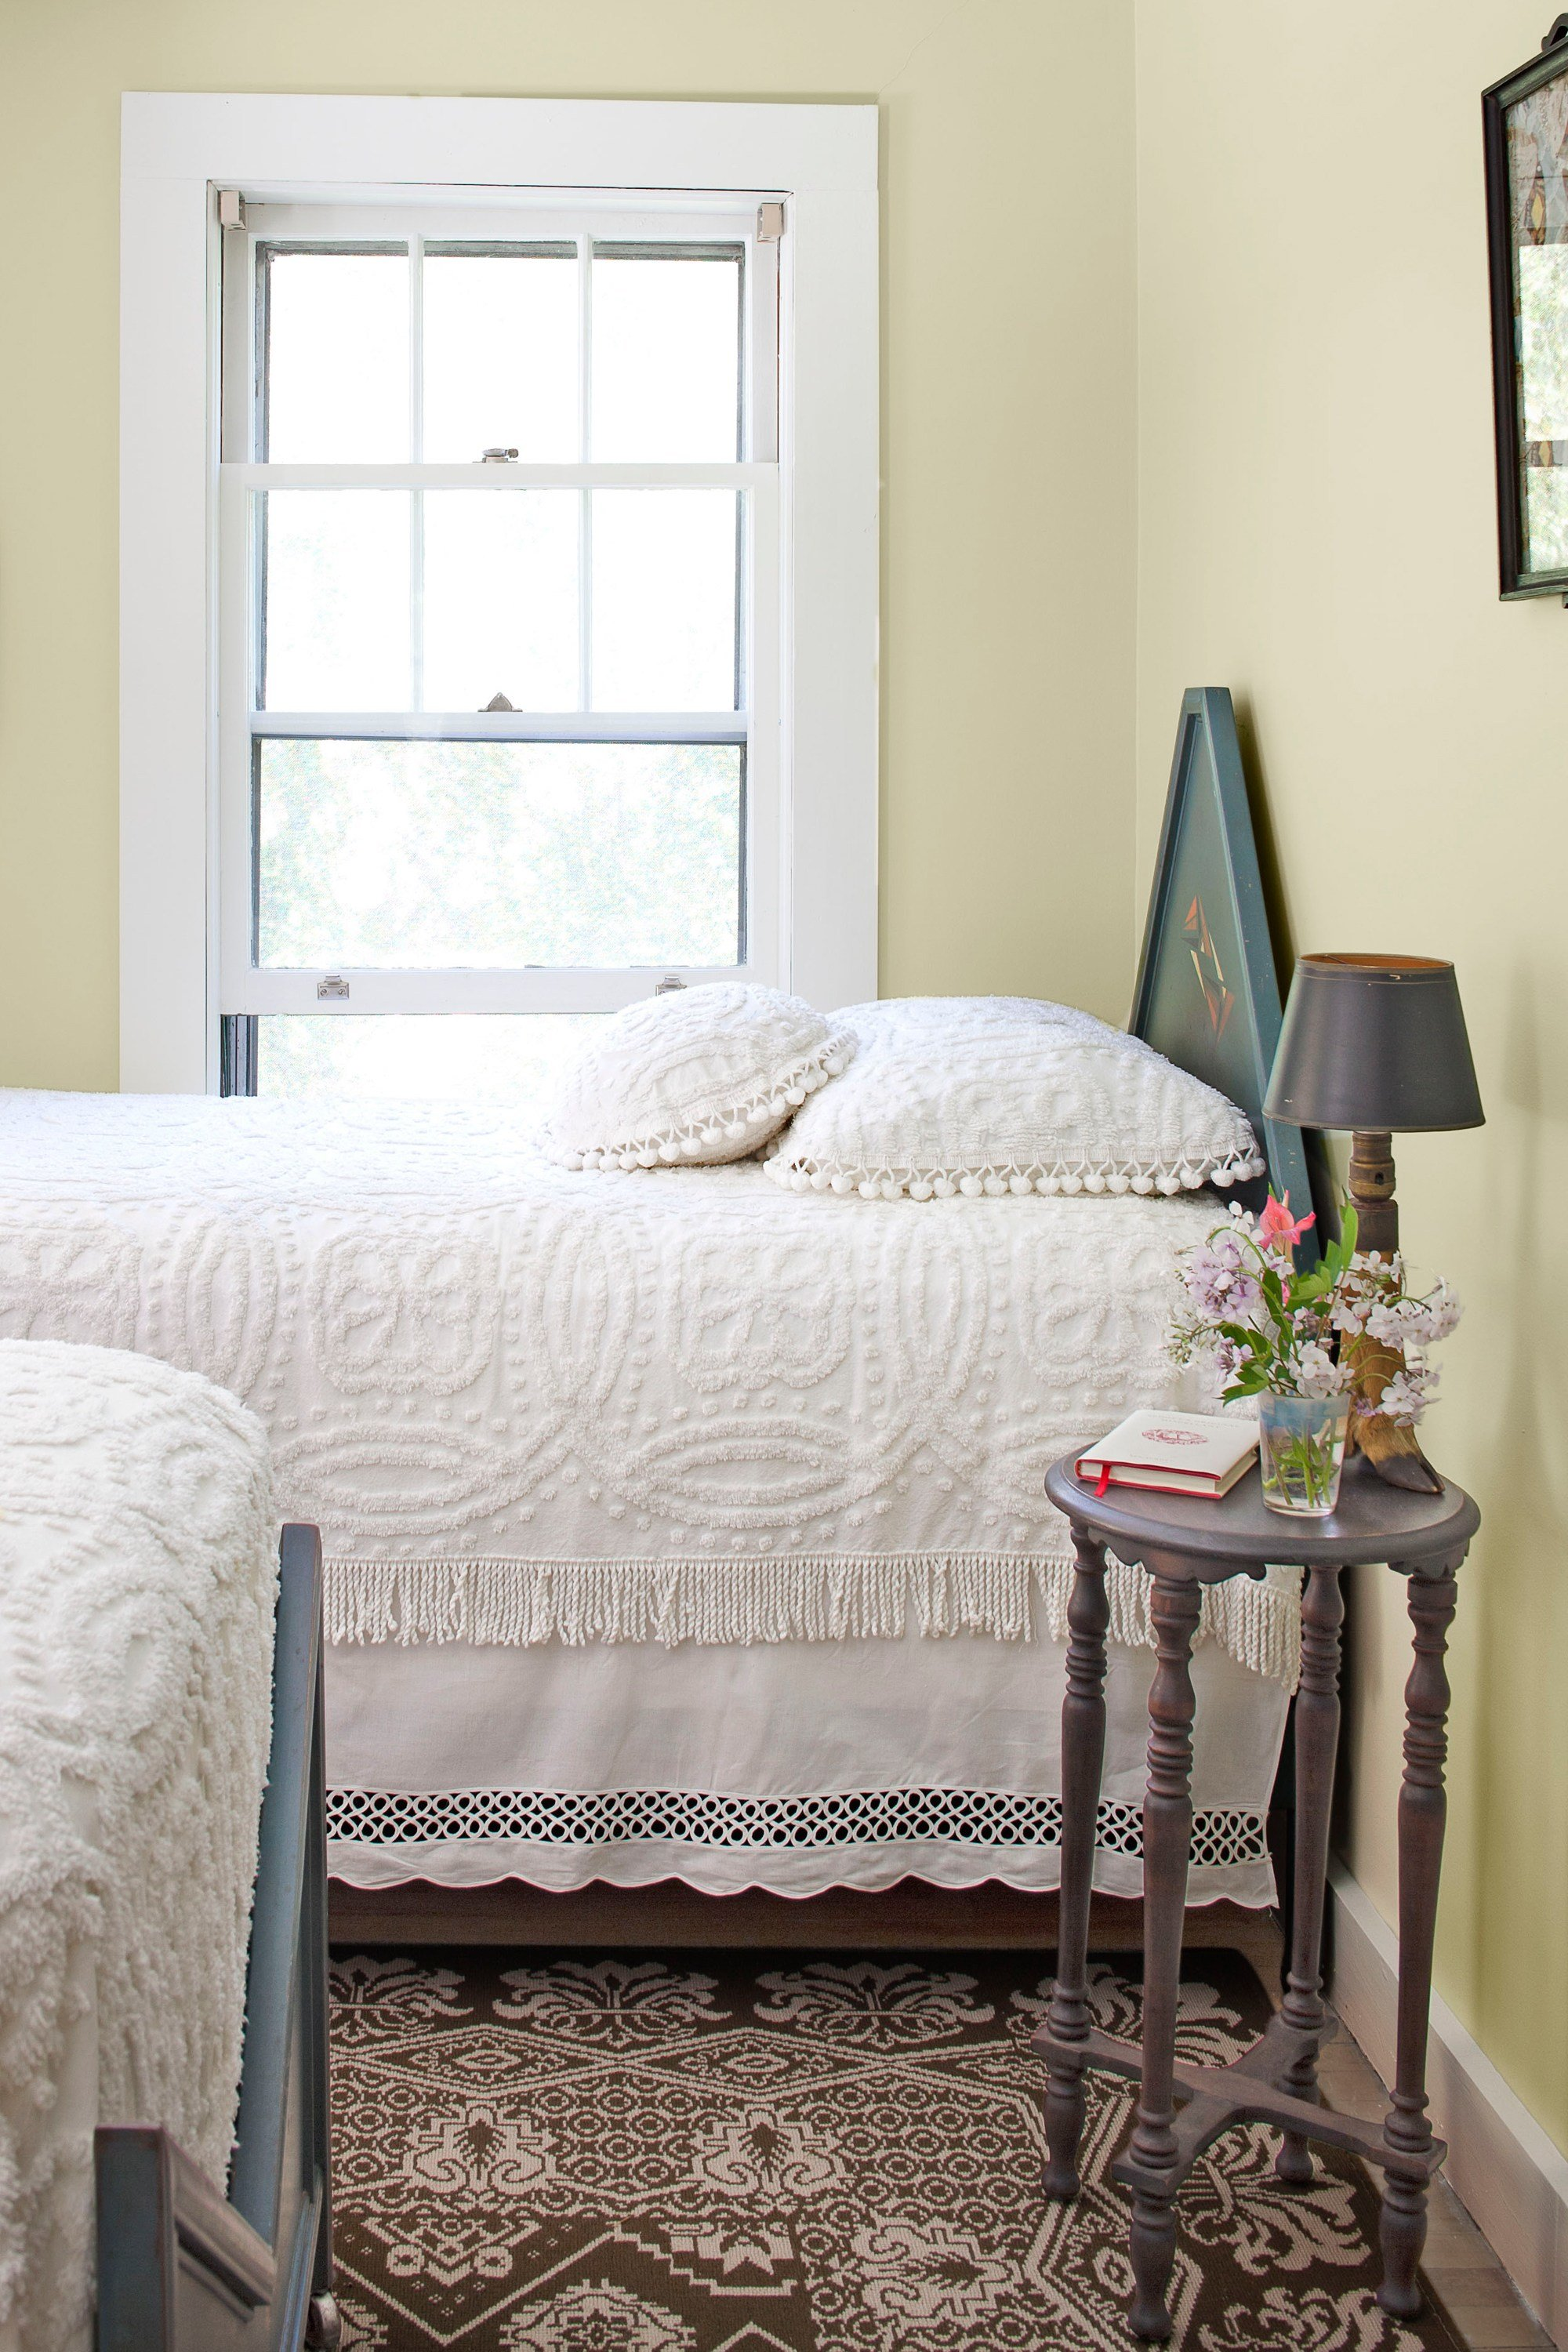 Best Interior Paint Finishes How To Pick A Paint Finish With Pictures